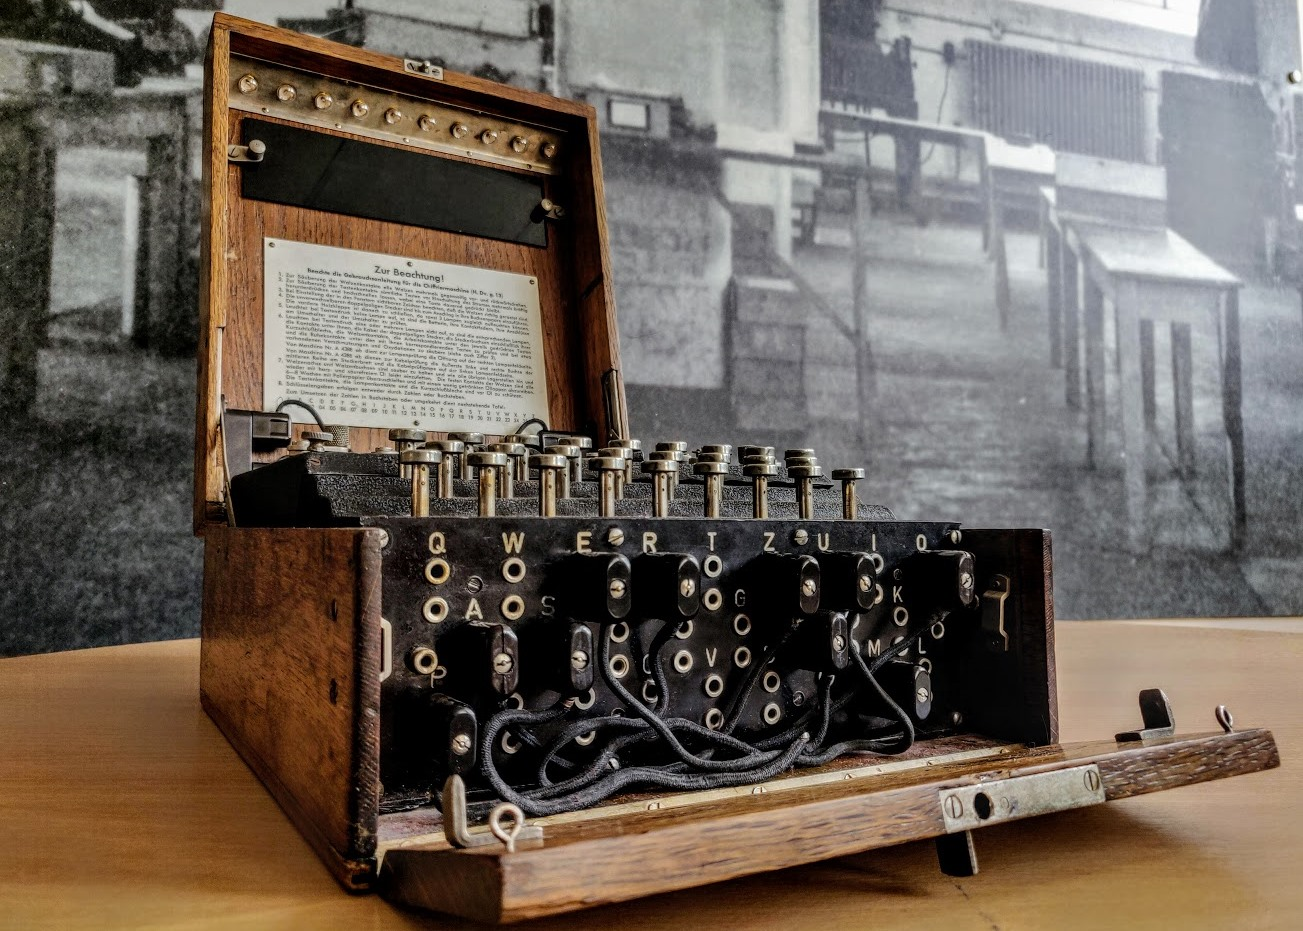 A photograph of the Enigma machine from Bletchley Park museum